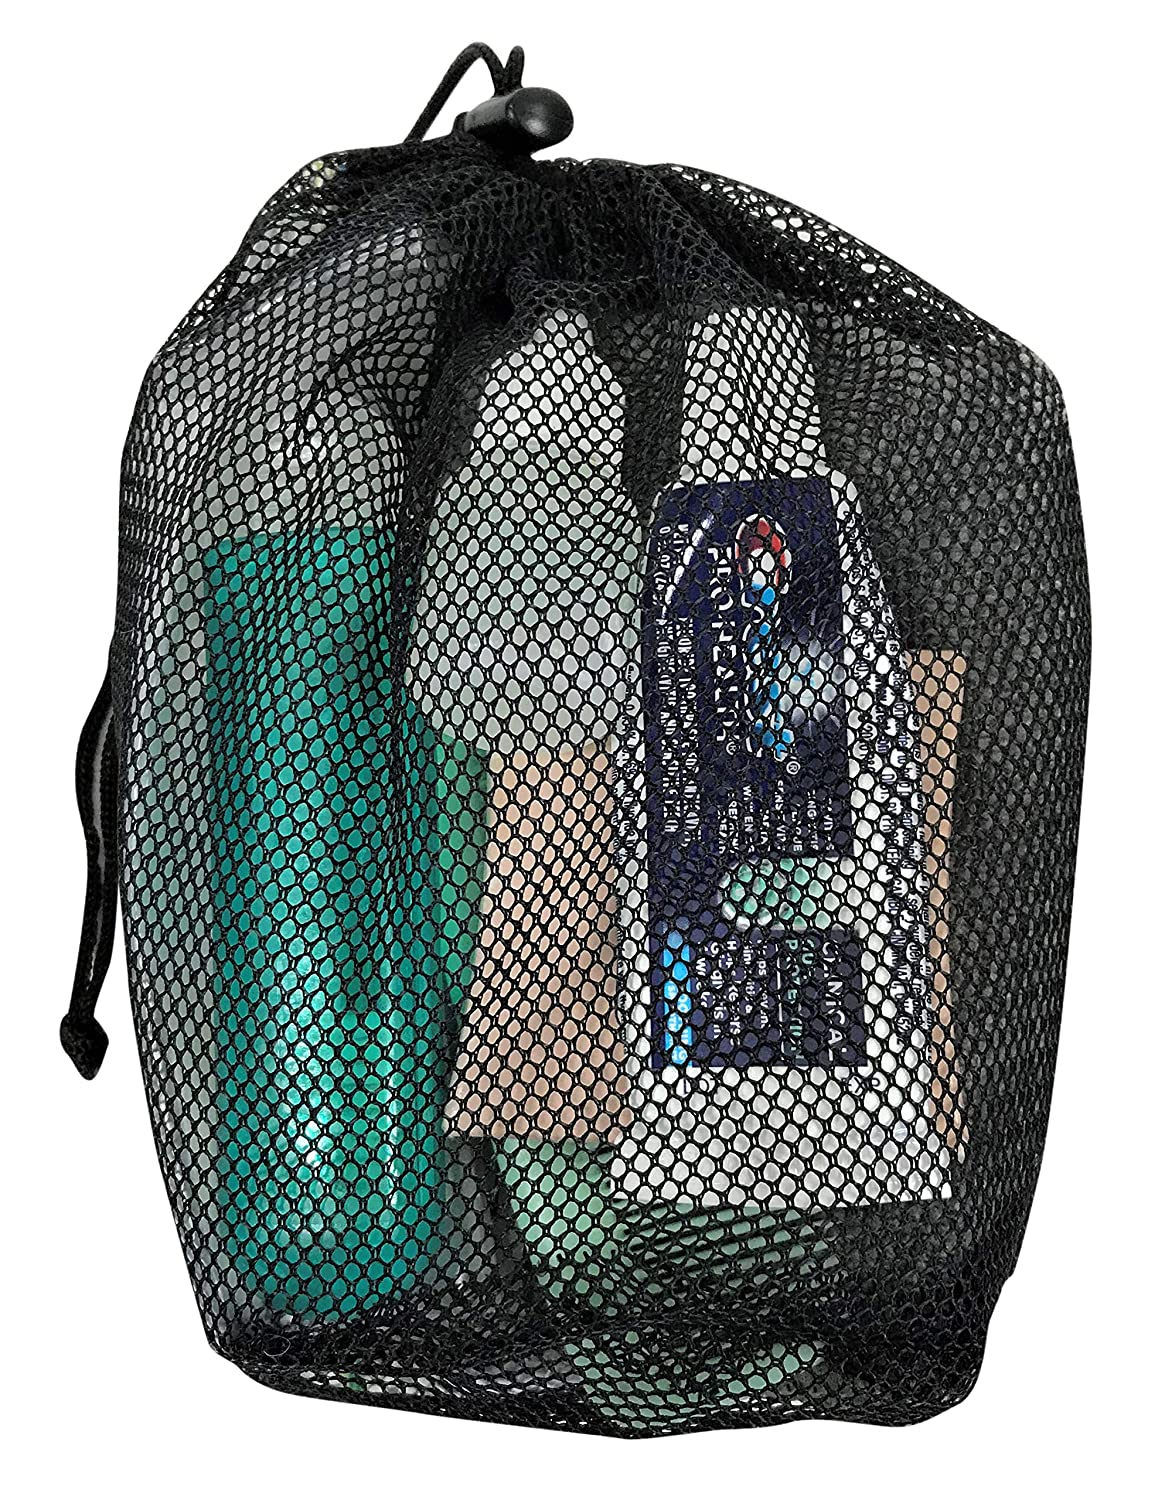 Ultralight 7 X 4 Ultralight Survival Kits Beach//Gym Gear or Organized Travelling Mesh Bag for Camp Cups//Cook Sets 7 X 4 DZ Outdoors See-Thru Ditty Bags Hiking//Camping Gear